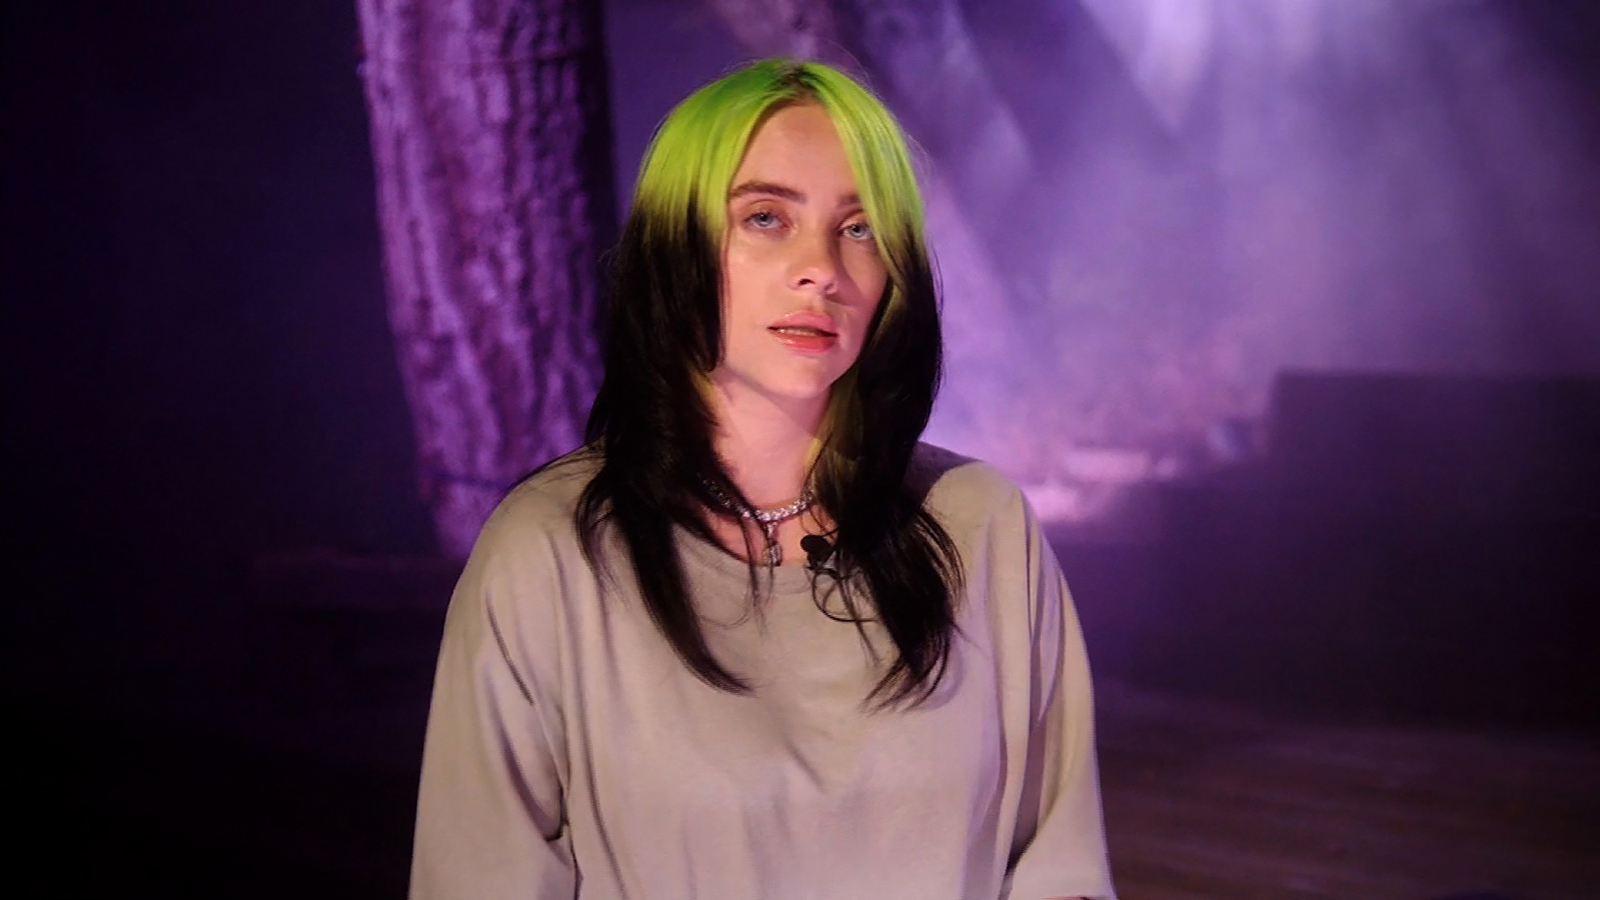 billie-eilish-urges-americans-to-vote-like-our-lives-the-world-depend-on-it